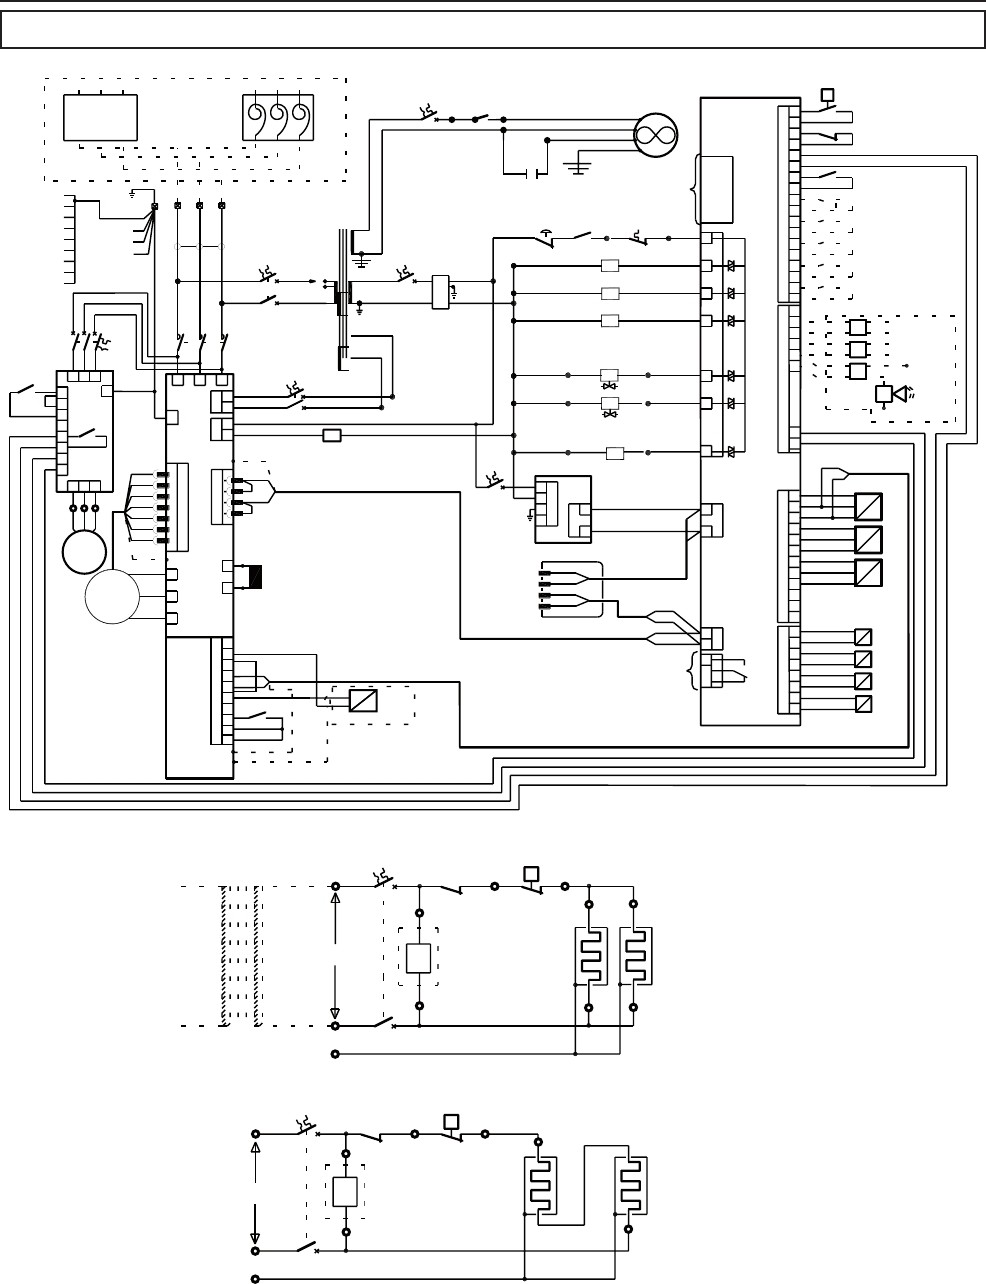 hight resolution of ingersoll rand air pressor wiring diagram of air pressor wiring diagram